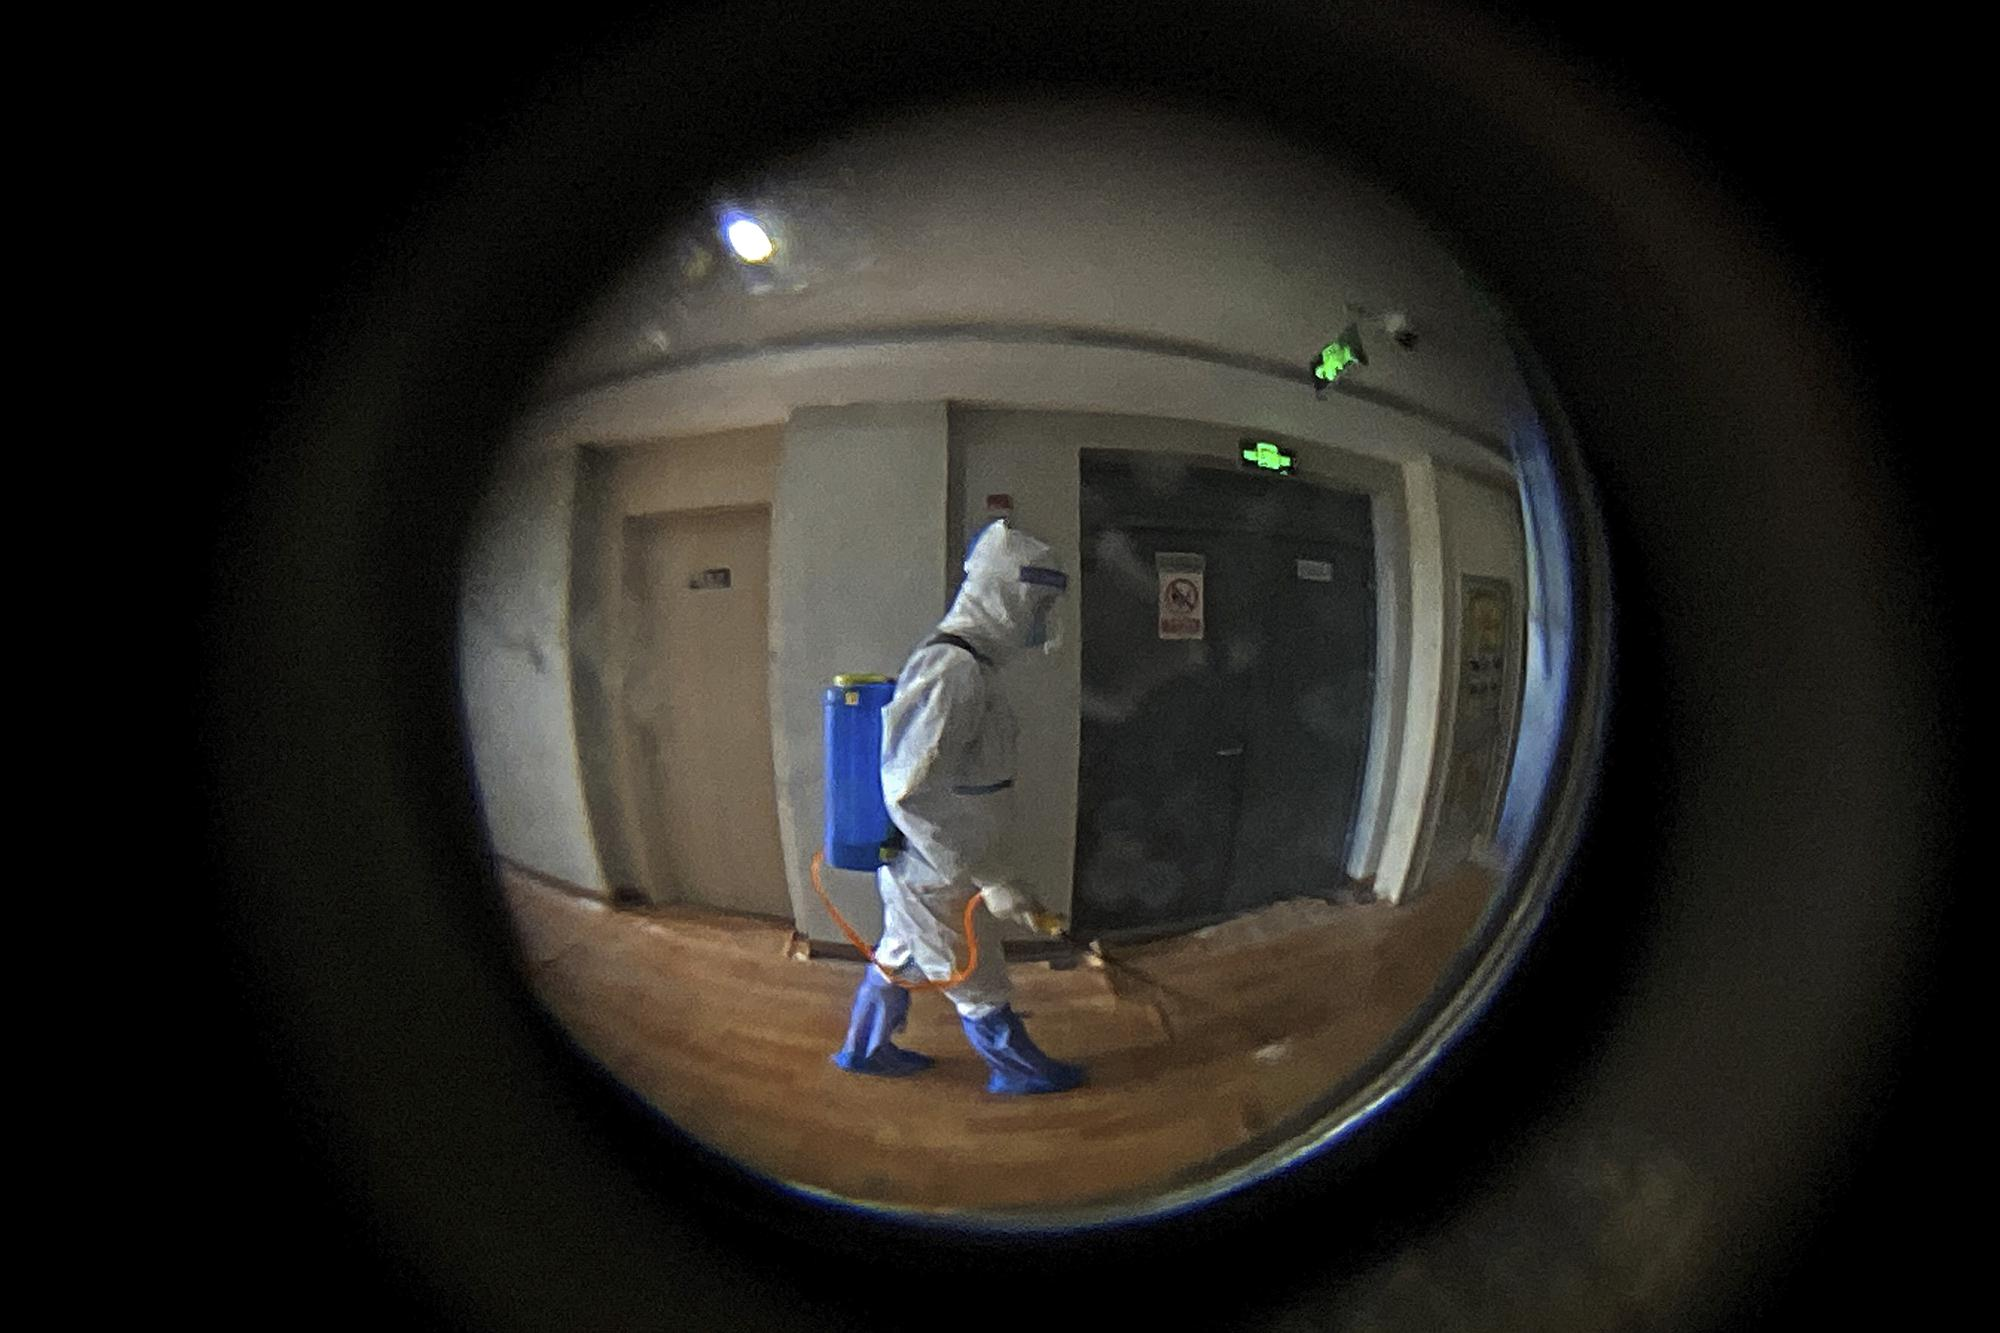 Seen through a door peephole, a medical worker wearing a protective clothing disinfects the corridor of a hotel used for foreigners to stay during a period of health quarantine in Shanghai, China, Thursday, Aug. 12, 2021. More than 30 Chinese officials have been fired or received other punishments over accusations they failed to respond properly to the latest surge of the coronavirus in the country. (AP Photo/Andy Wong)